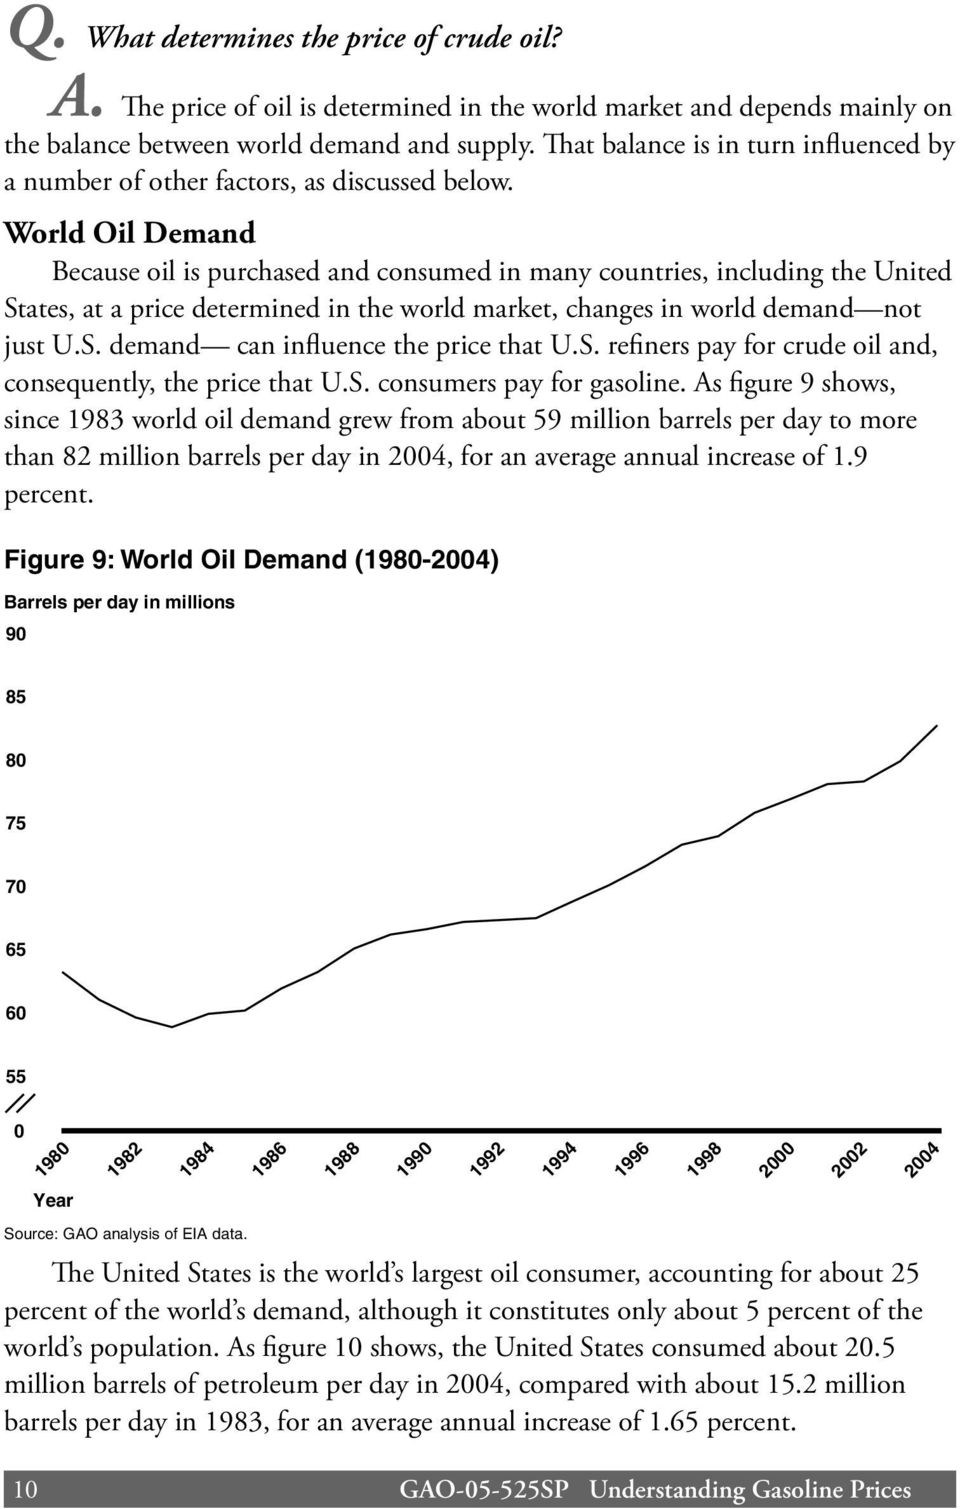 World Oil Demand Because oil is purchased and consumed in many countries, including the United States, at a price determined in the world market, changes in world demand not just U.S. demand can influence the price that U.